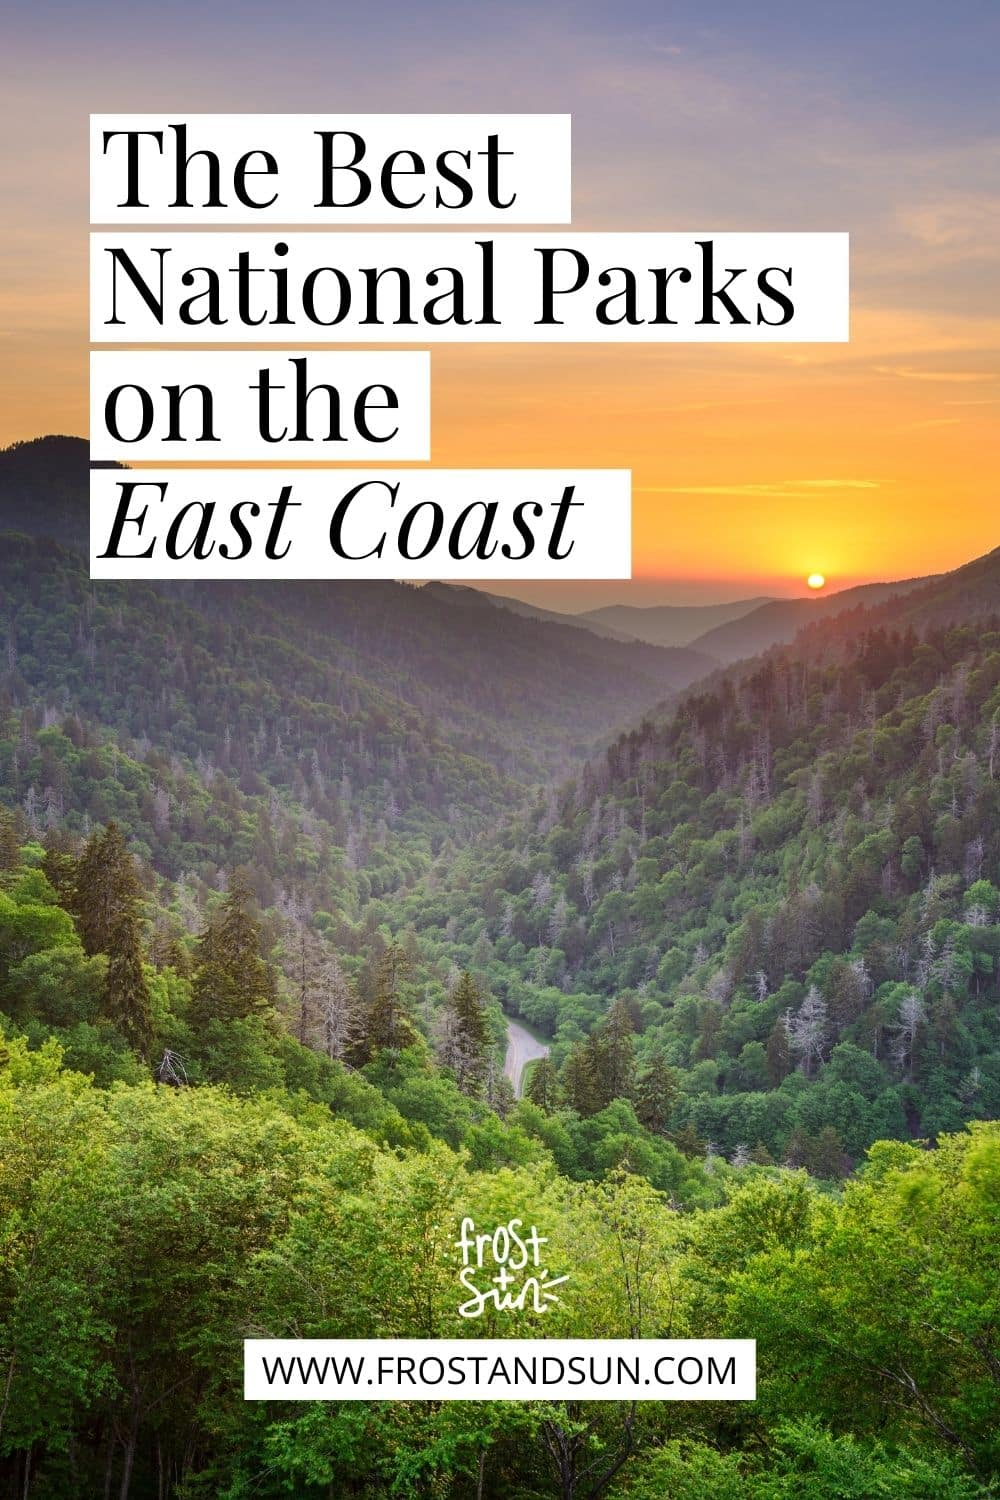 The Best National Parks on the East Coast USA